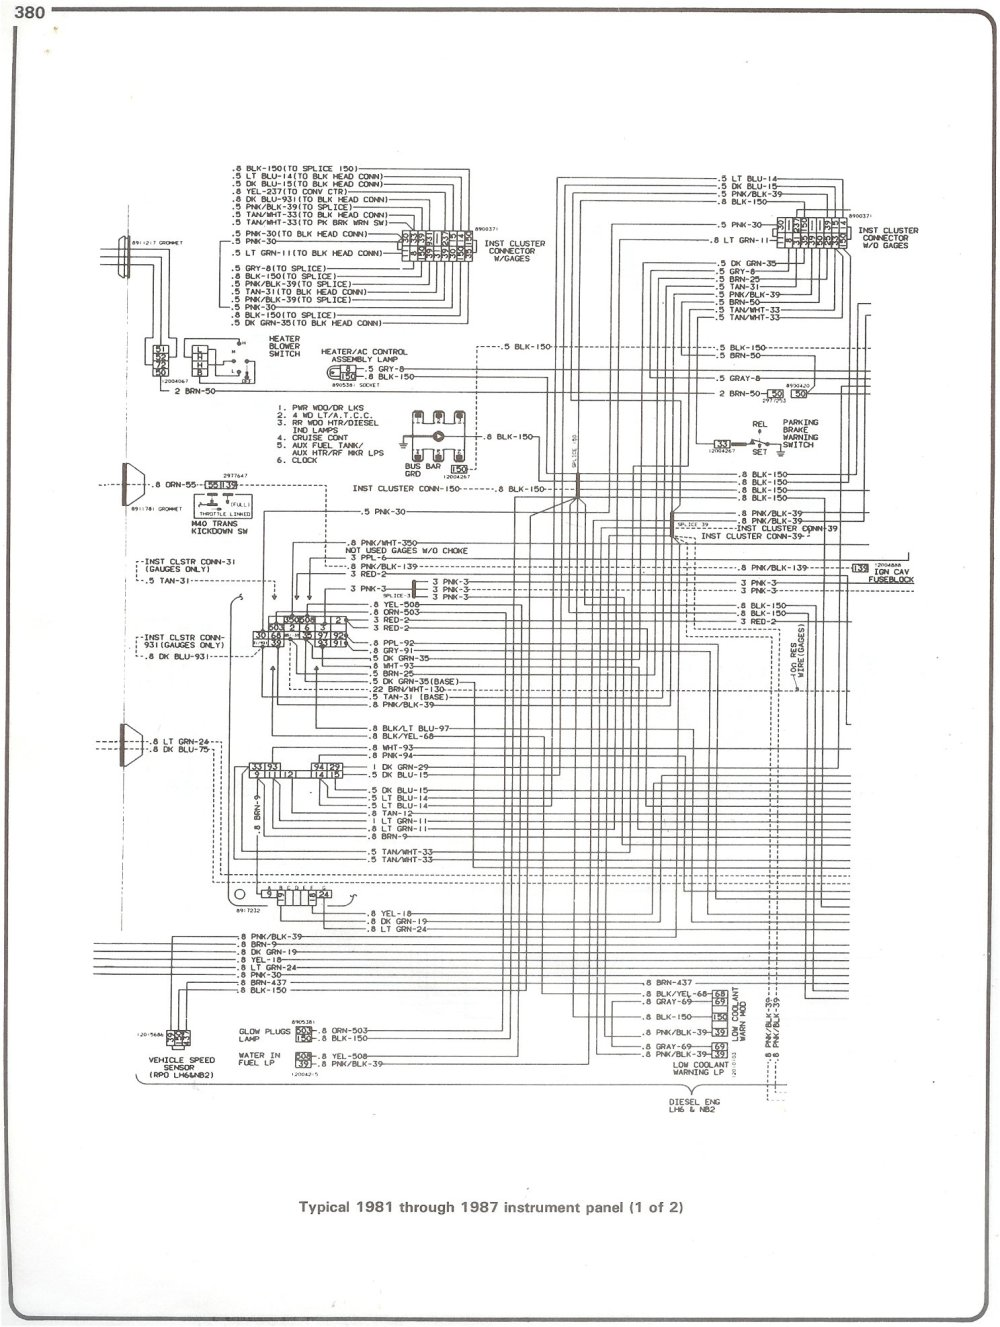 medium resolution of 1985 chevy truck wiring schematic wiring diagram todays chevy truck wiring harness diagram 1985 chevy truck instrument cluster wiring diagram